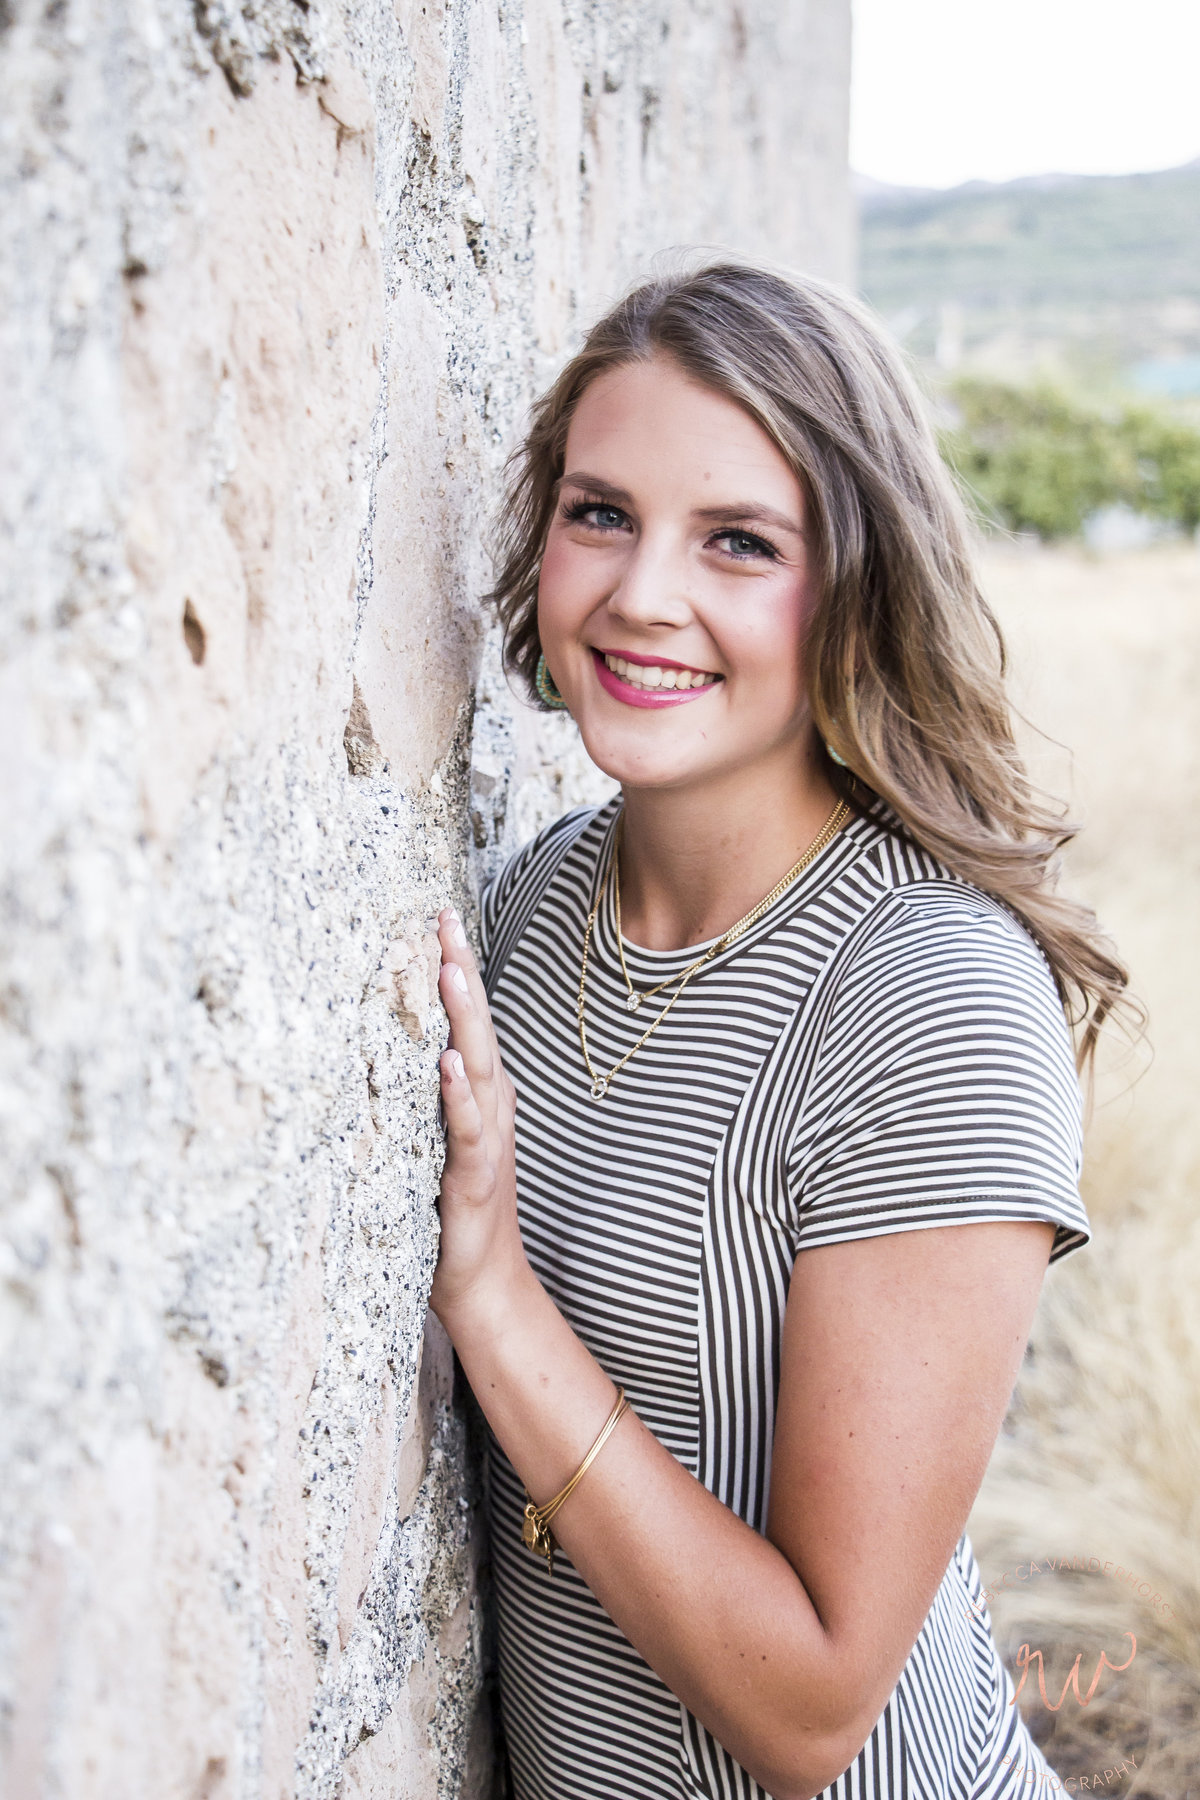 Stone wall, senior photos, high school female